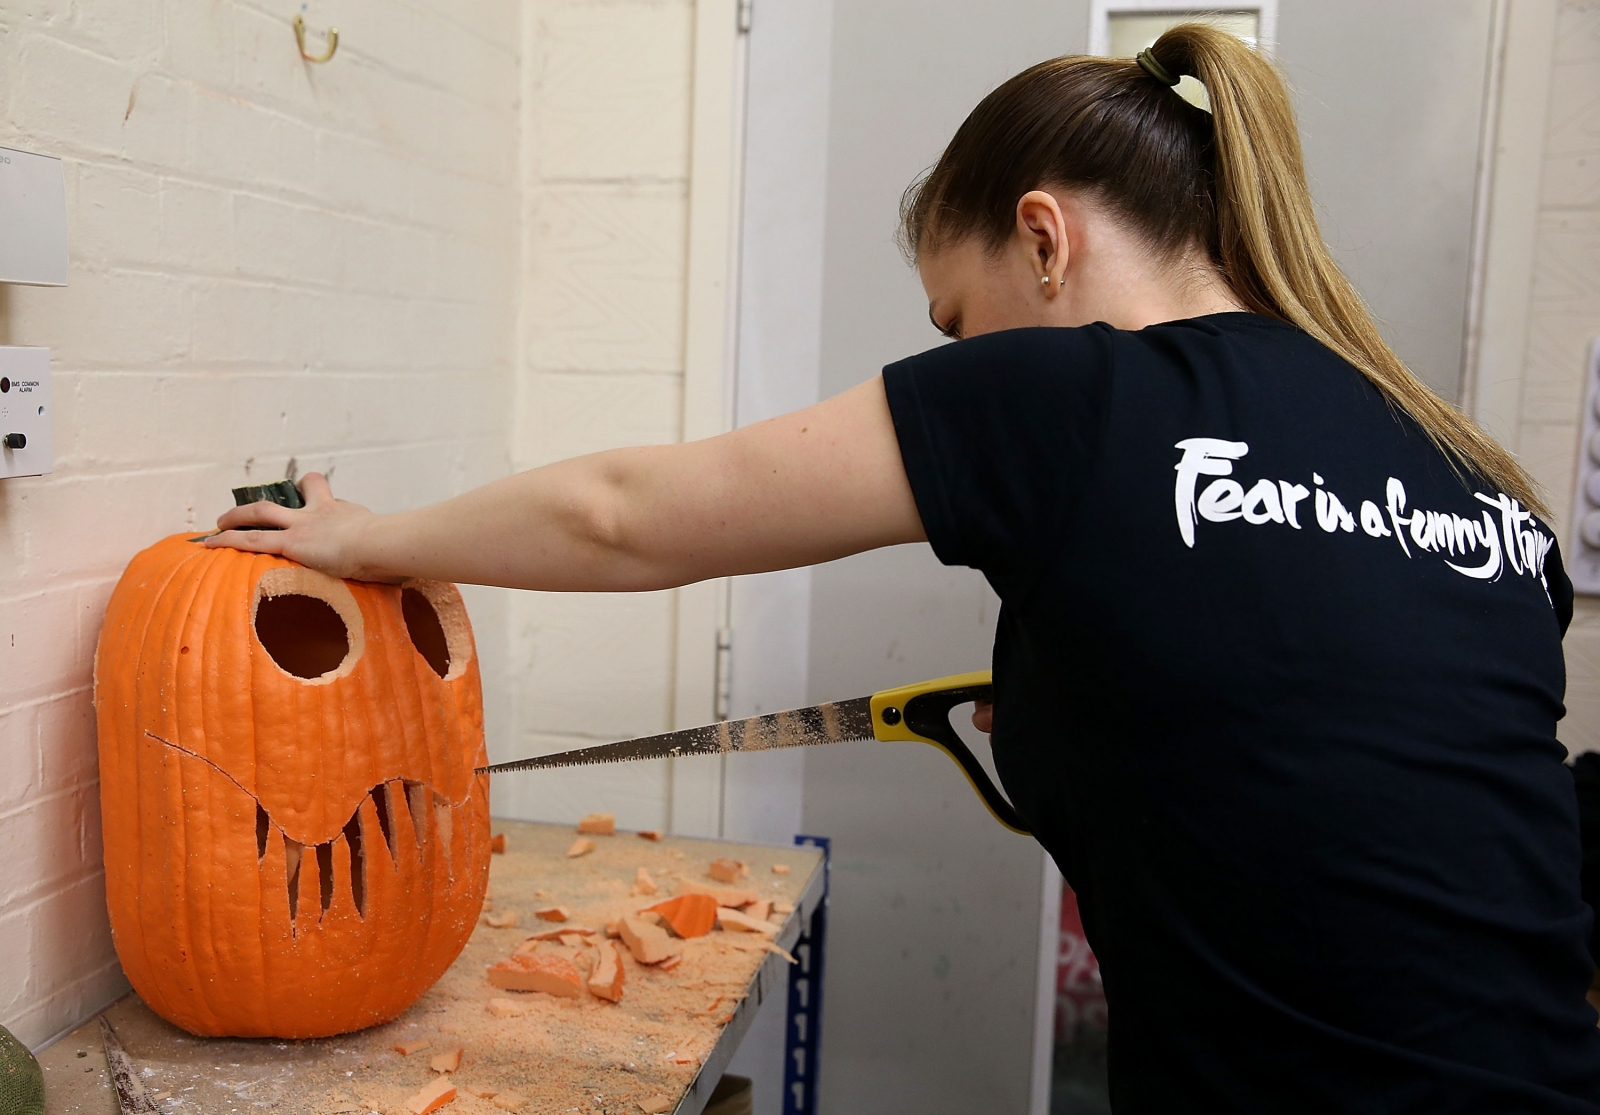 A pumpkin being carved by a London Dungeons employee to decorate the attraction for Halloween